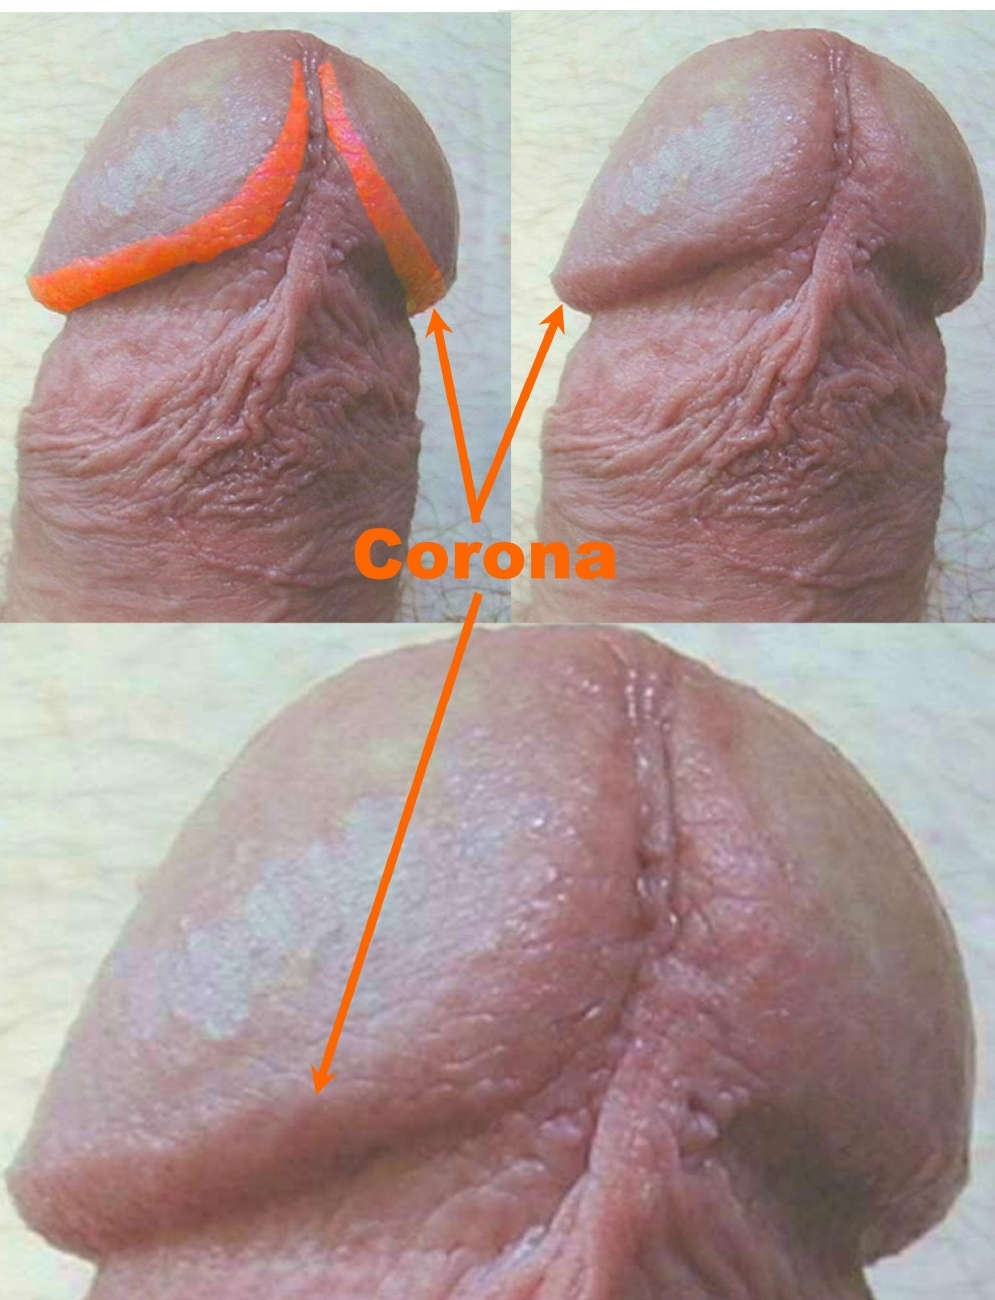 Symptoms of penile cancer - Cancer Research UK